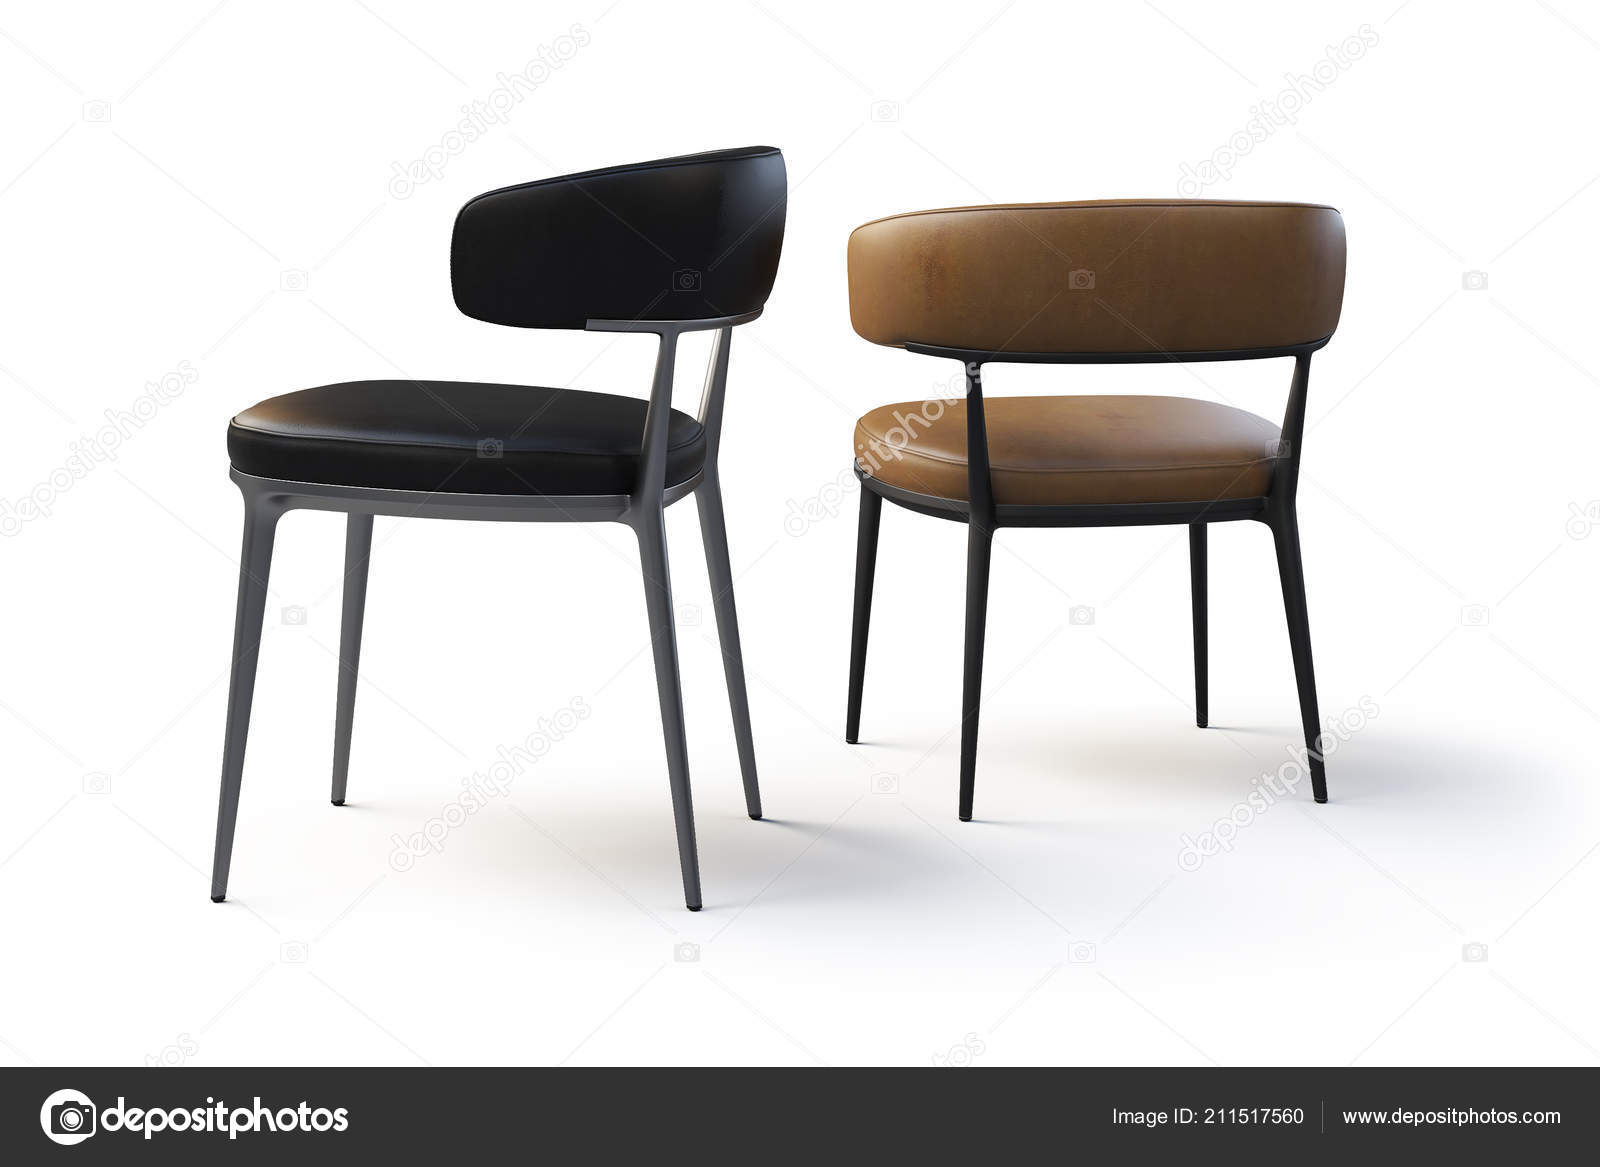 Swell Brown Black Leather Chairs Metal Legs White Background Unemploymentrelief Wooden Chair Designs For Living Room Unemploymentrelieforg